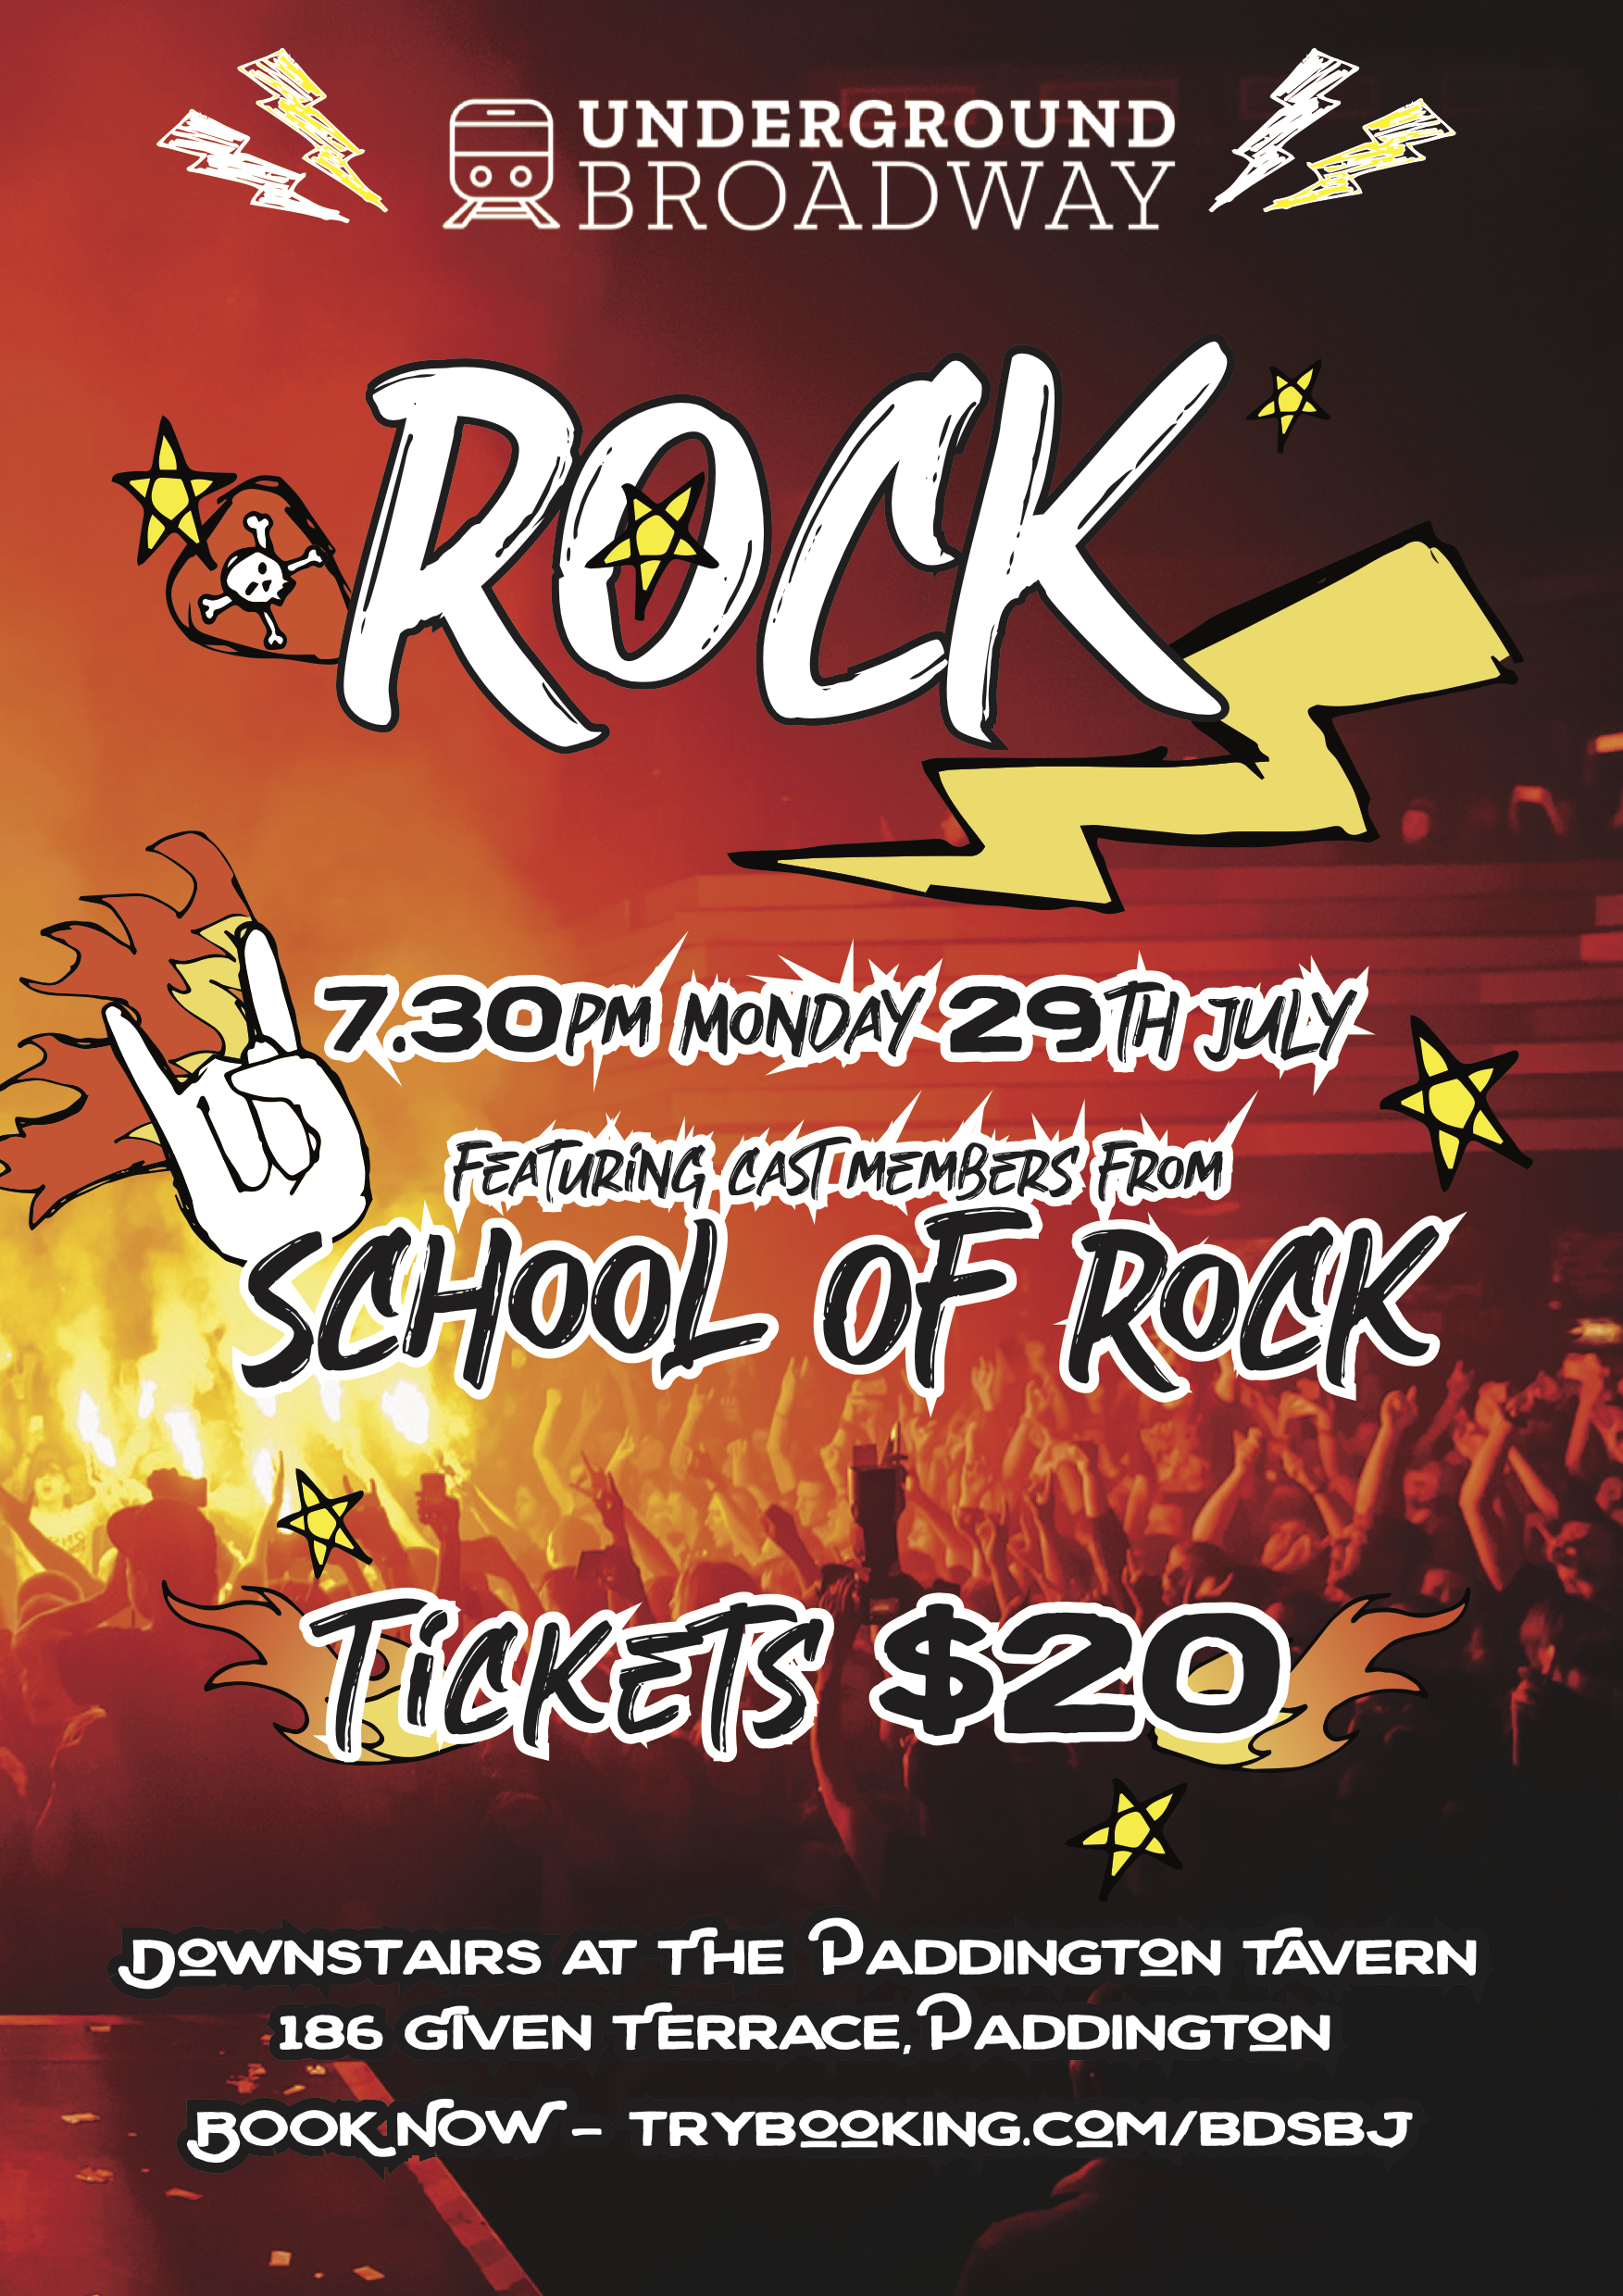 - WHO WANTS TO ROCK?!We are back on July 29th with a collection of Rock hits from your favourite musicals featuring cast members from School Of Rock.